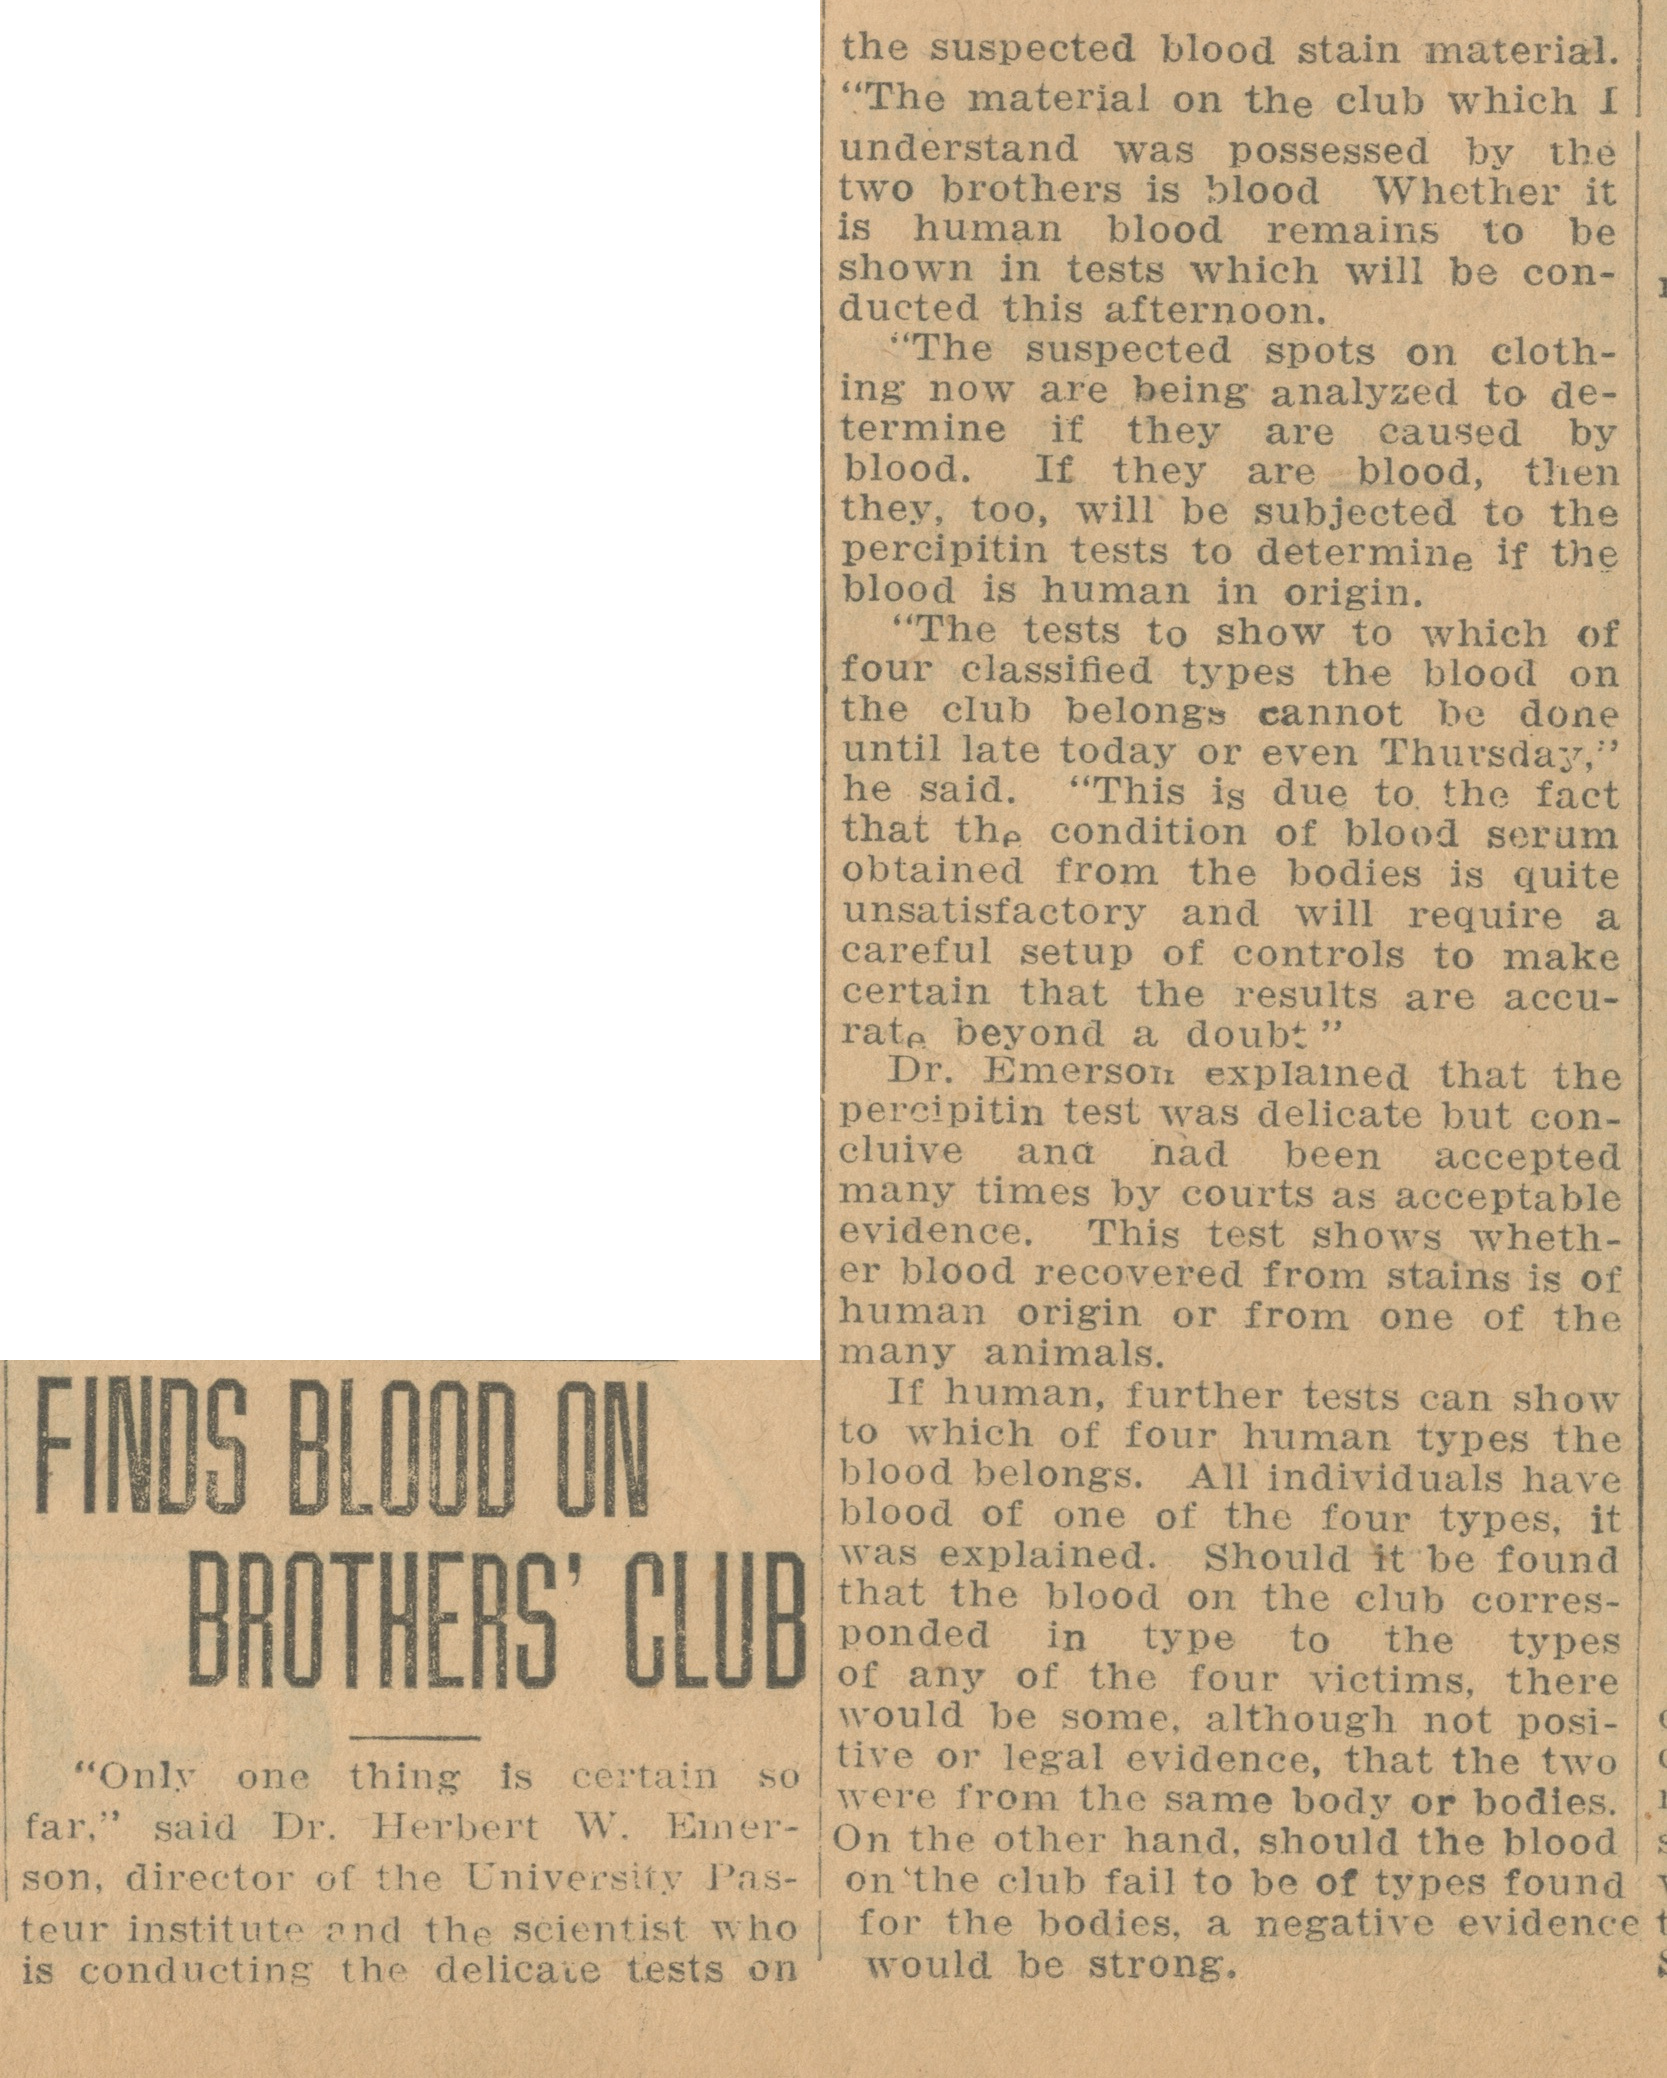 Finds Blood On Brothers' Club image